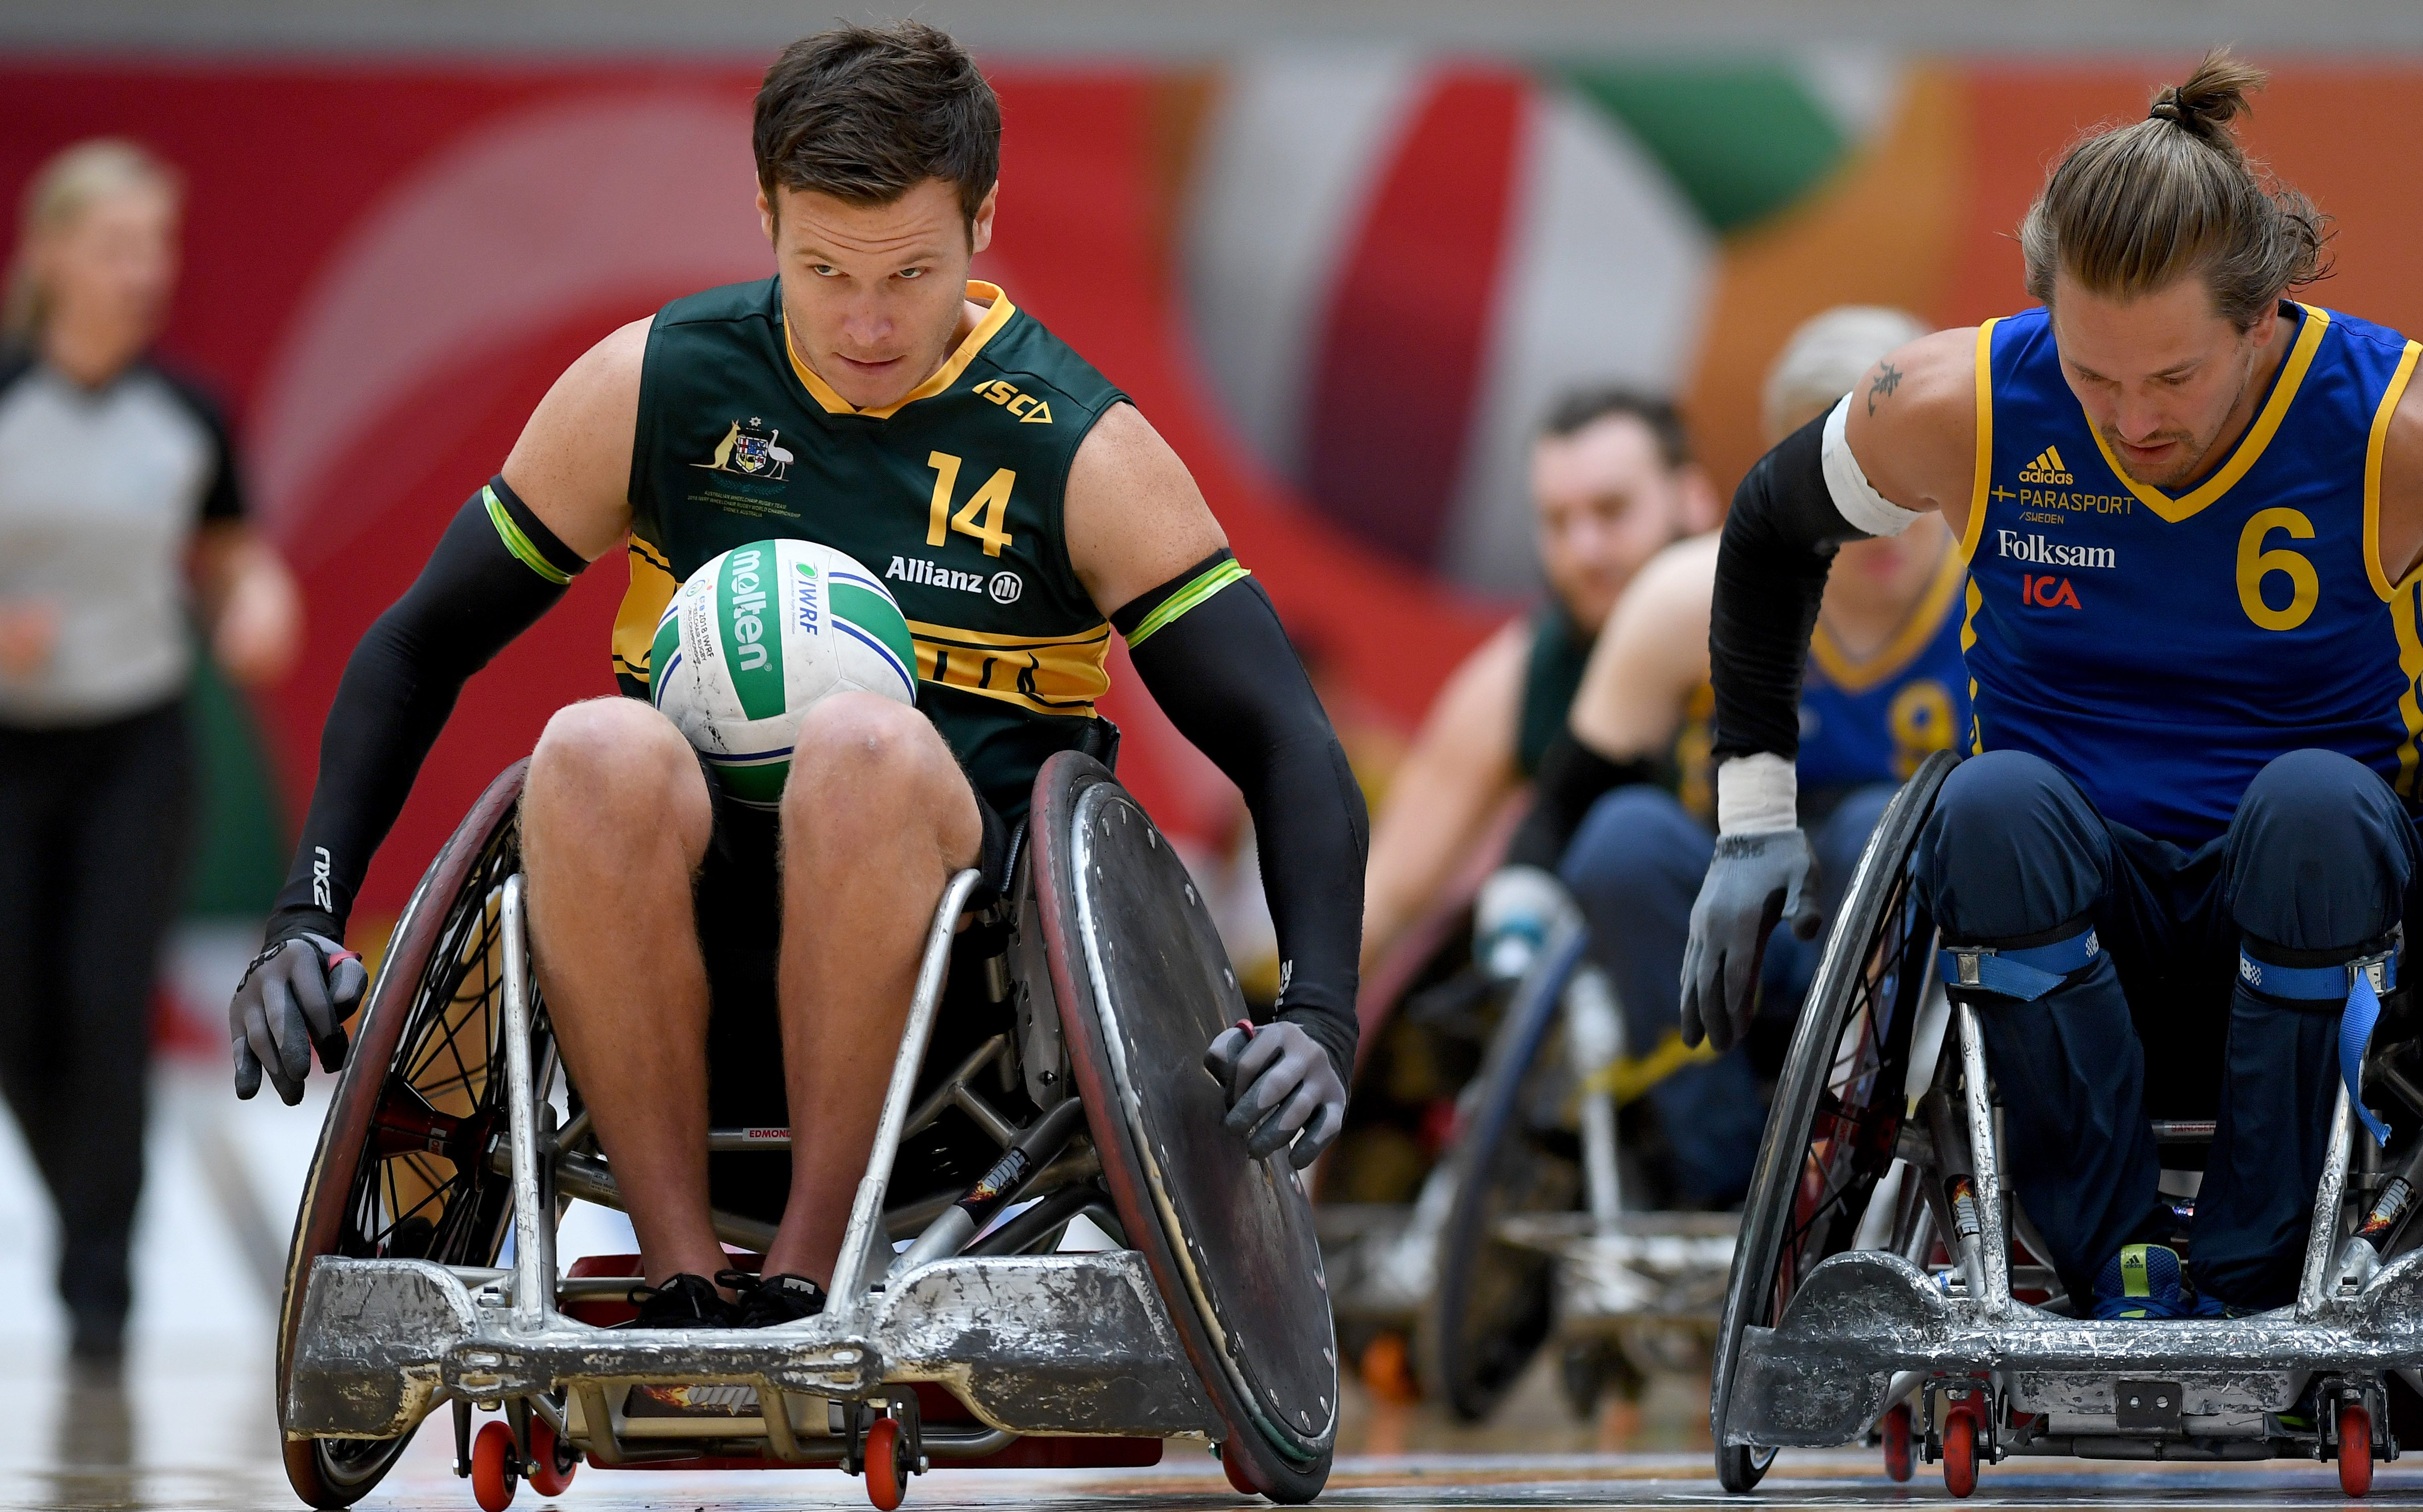 Steelers thrash Sweden to roll on at Wheelchair Rugby World Championships